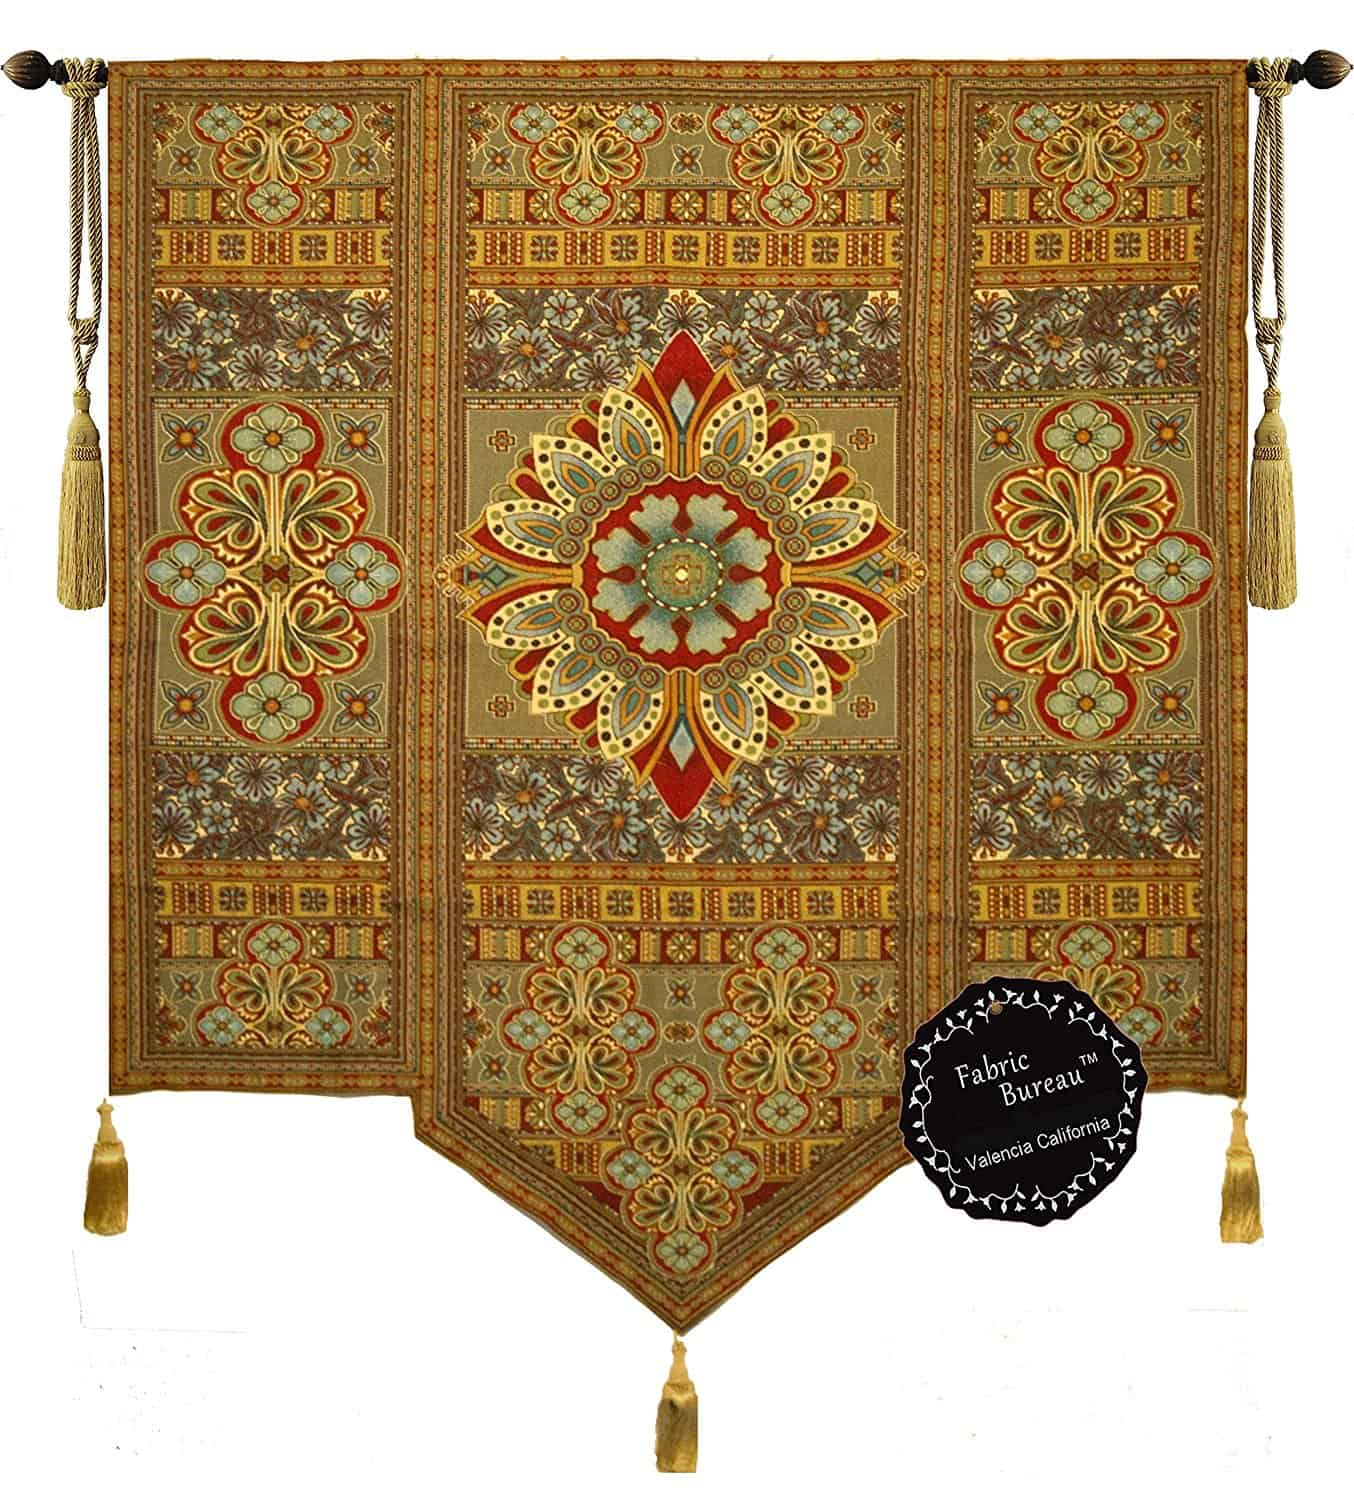 Beautiful Road to Moroccan Large Fine Tapestry Jacquard Woven Wall Hanging Art Decor